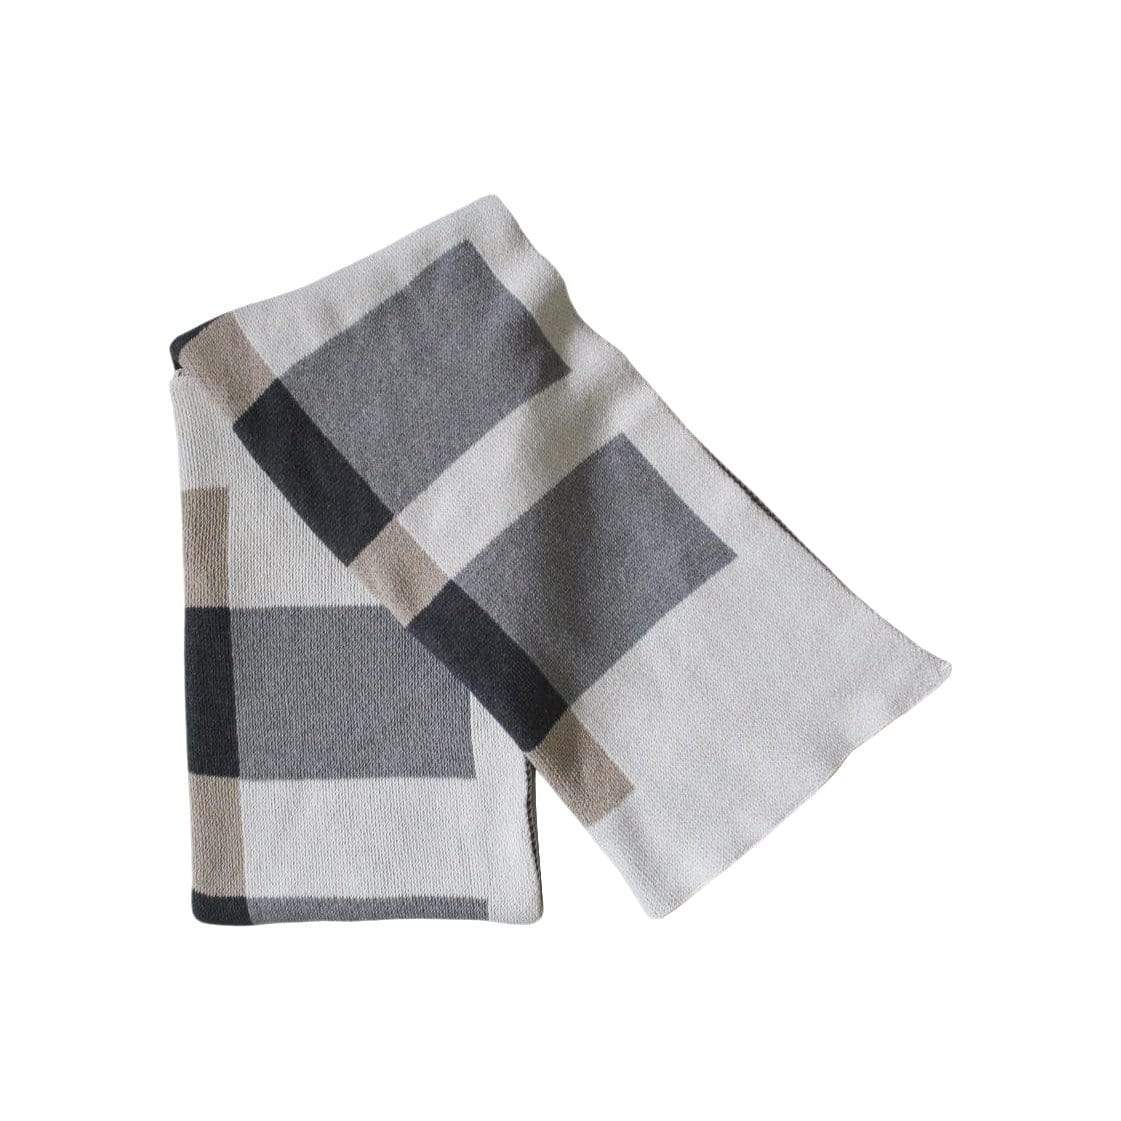 Happy Habitat Cushions + Throws Layers Linen + Grey Throw